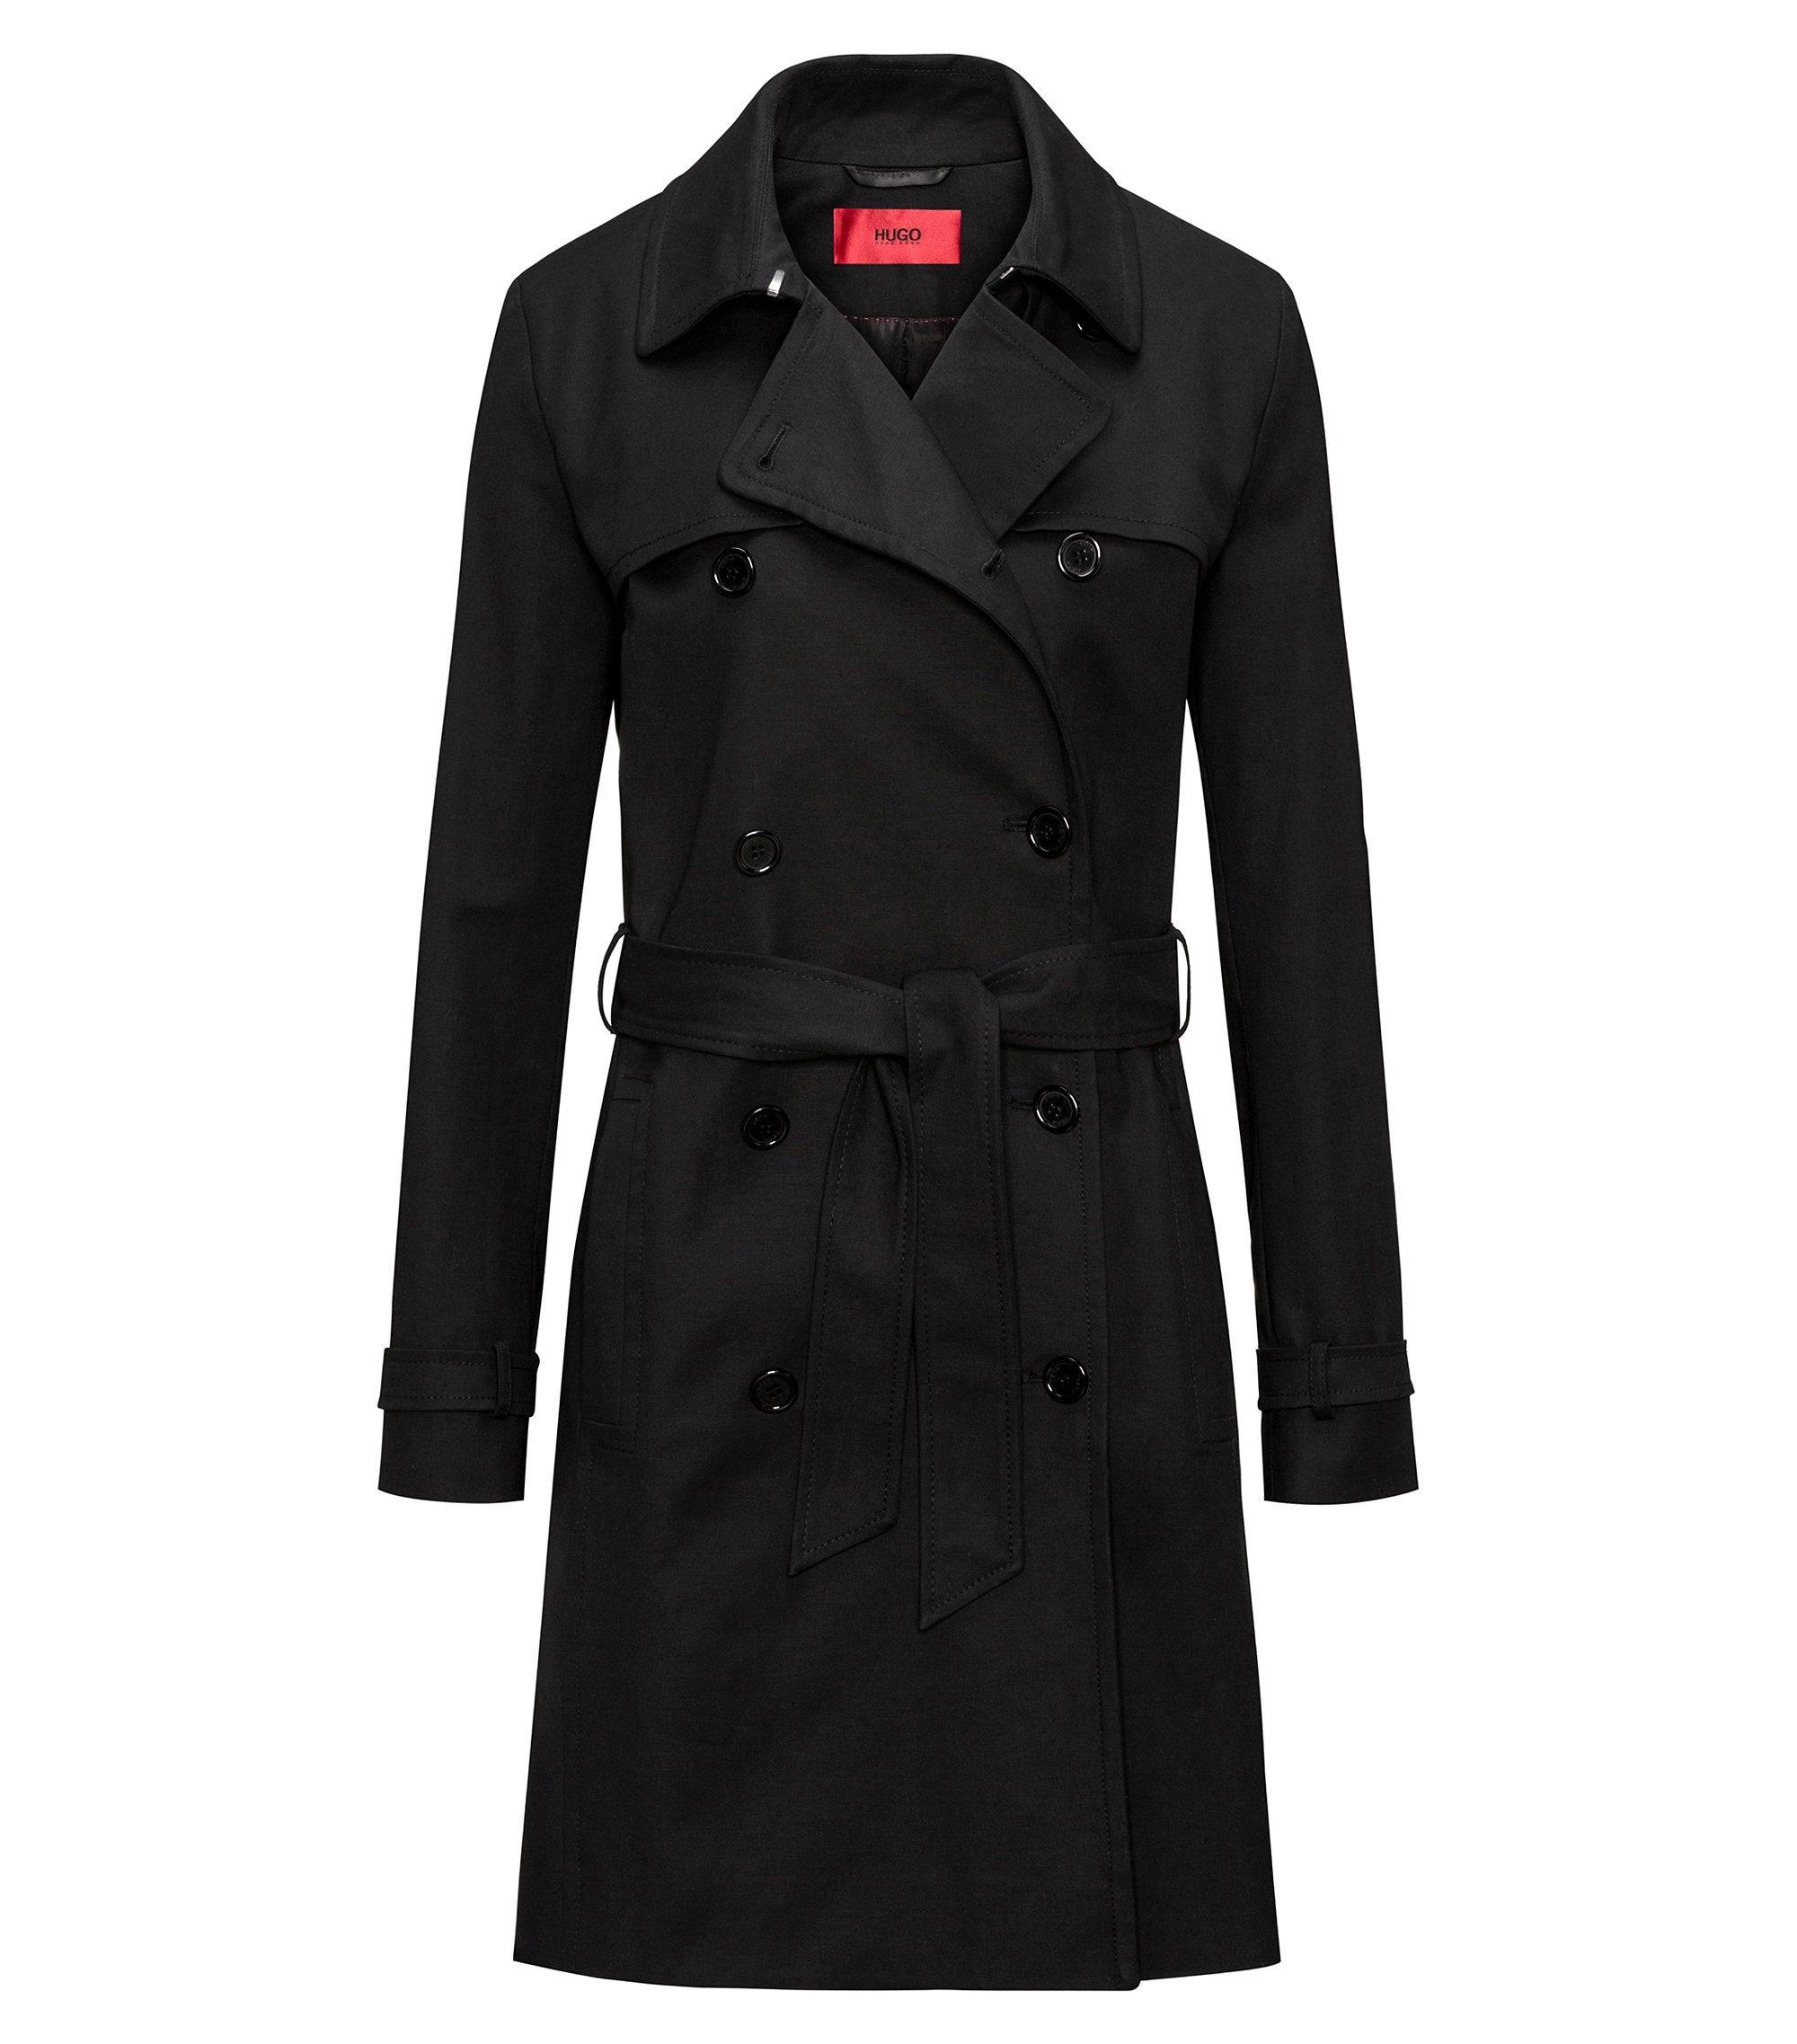 Zweireihiger Regular-Fit Trenchcoat aus Stretch-Baumwolle, Schwarz